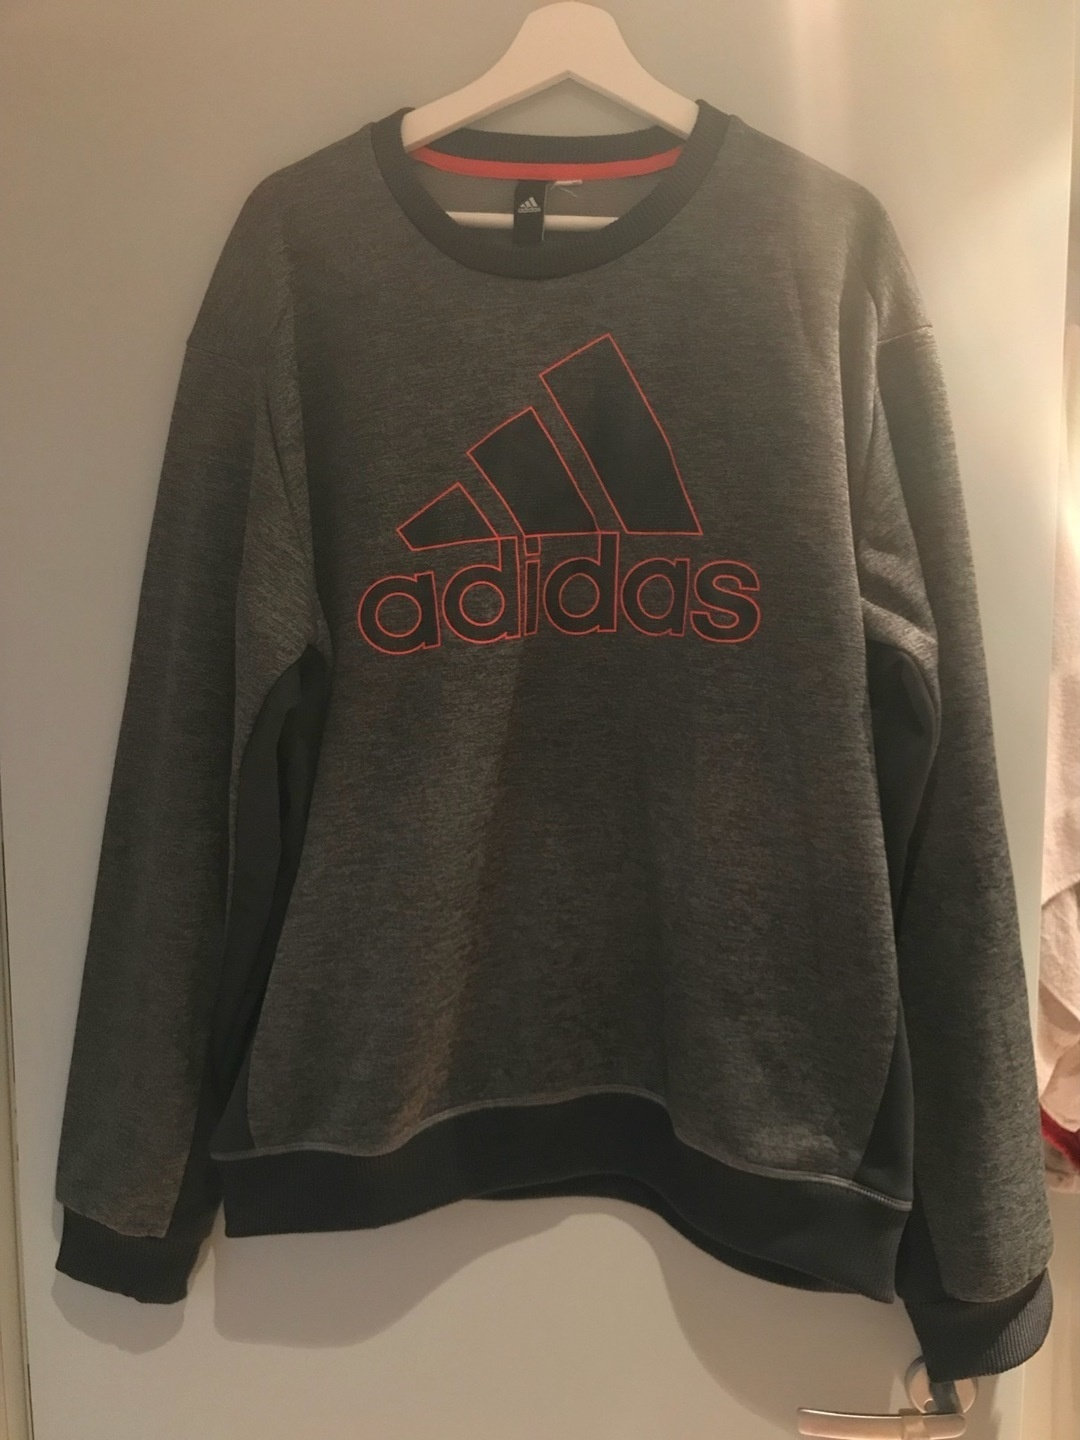 Damen kapuzenpullover & sweatshirts - ADIDAS photo 1